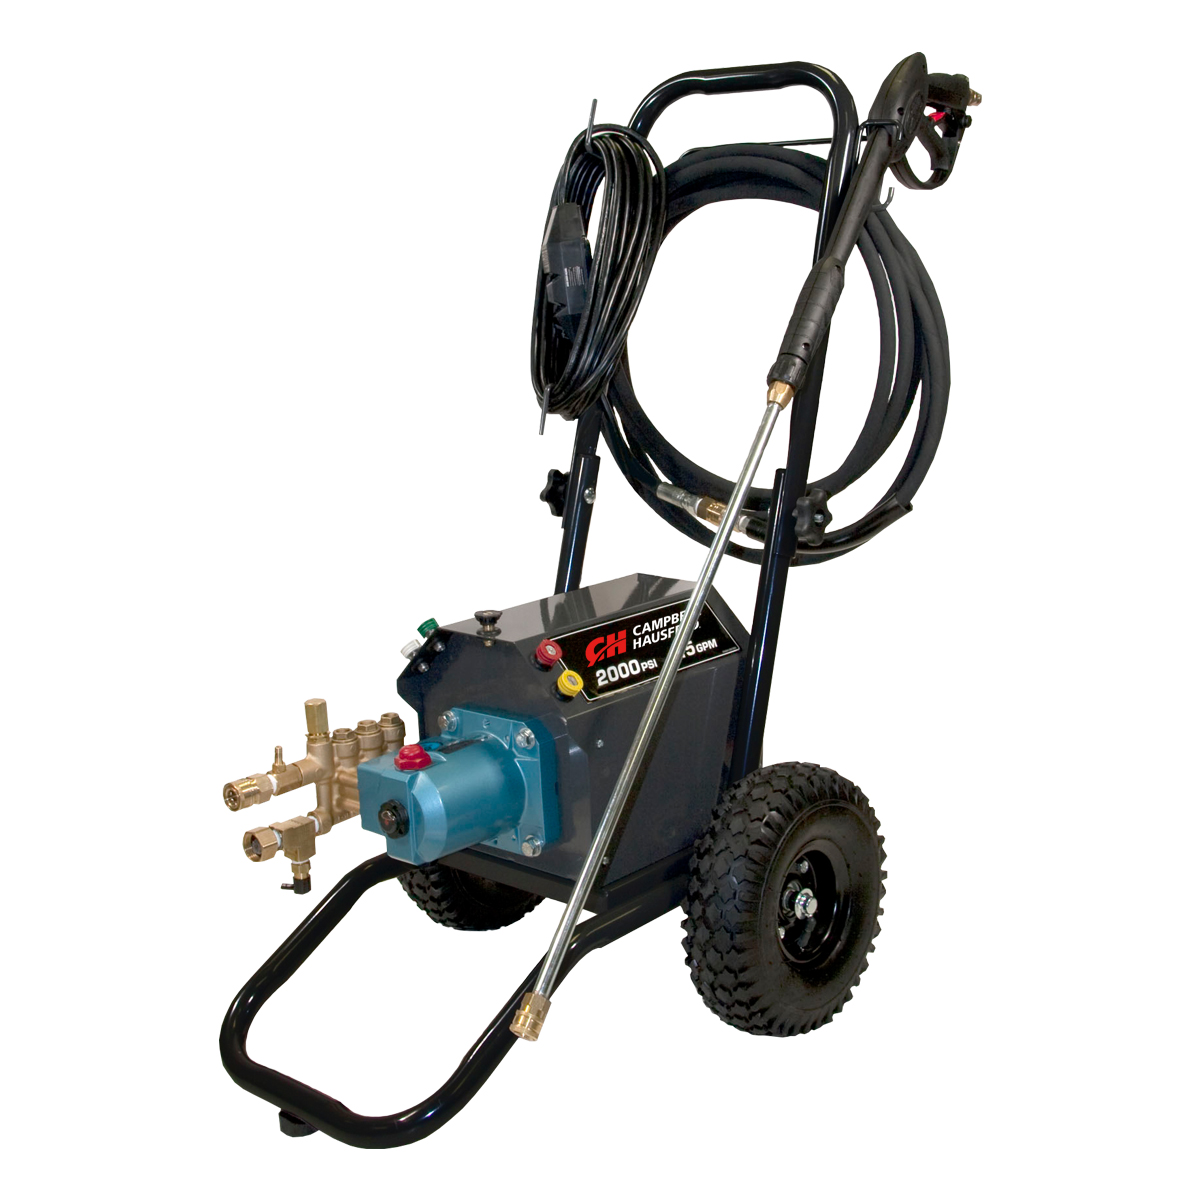 Pressure Washer, 2000 PSI 1.5 GPM Electric Triplex Pump 120V 20A (CP5211)